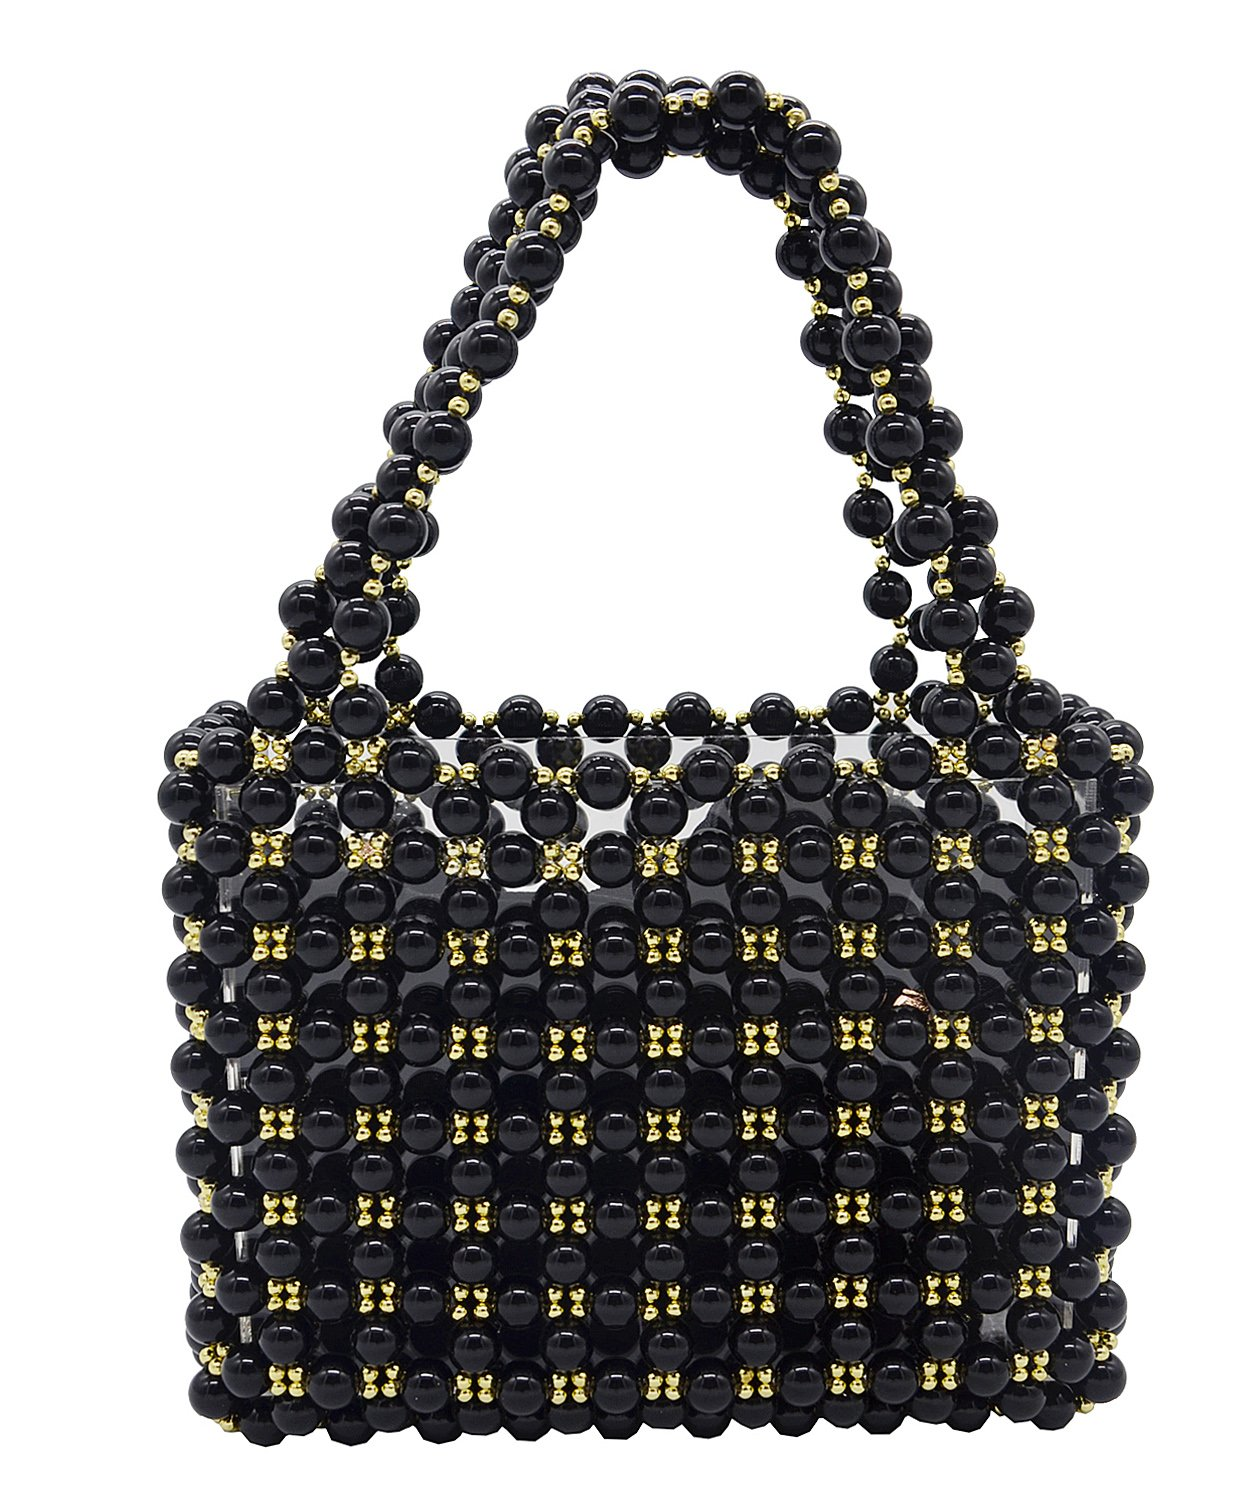 Miuco Women's Vintage Style Pearl Tote Bags Evening Clutch Wedding Purse Black by Miuco (Image #1)